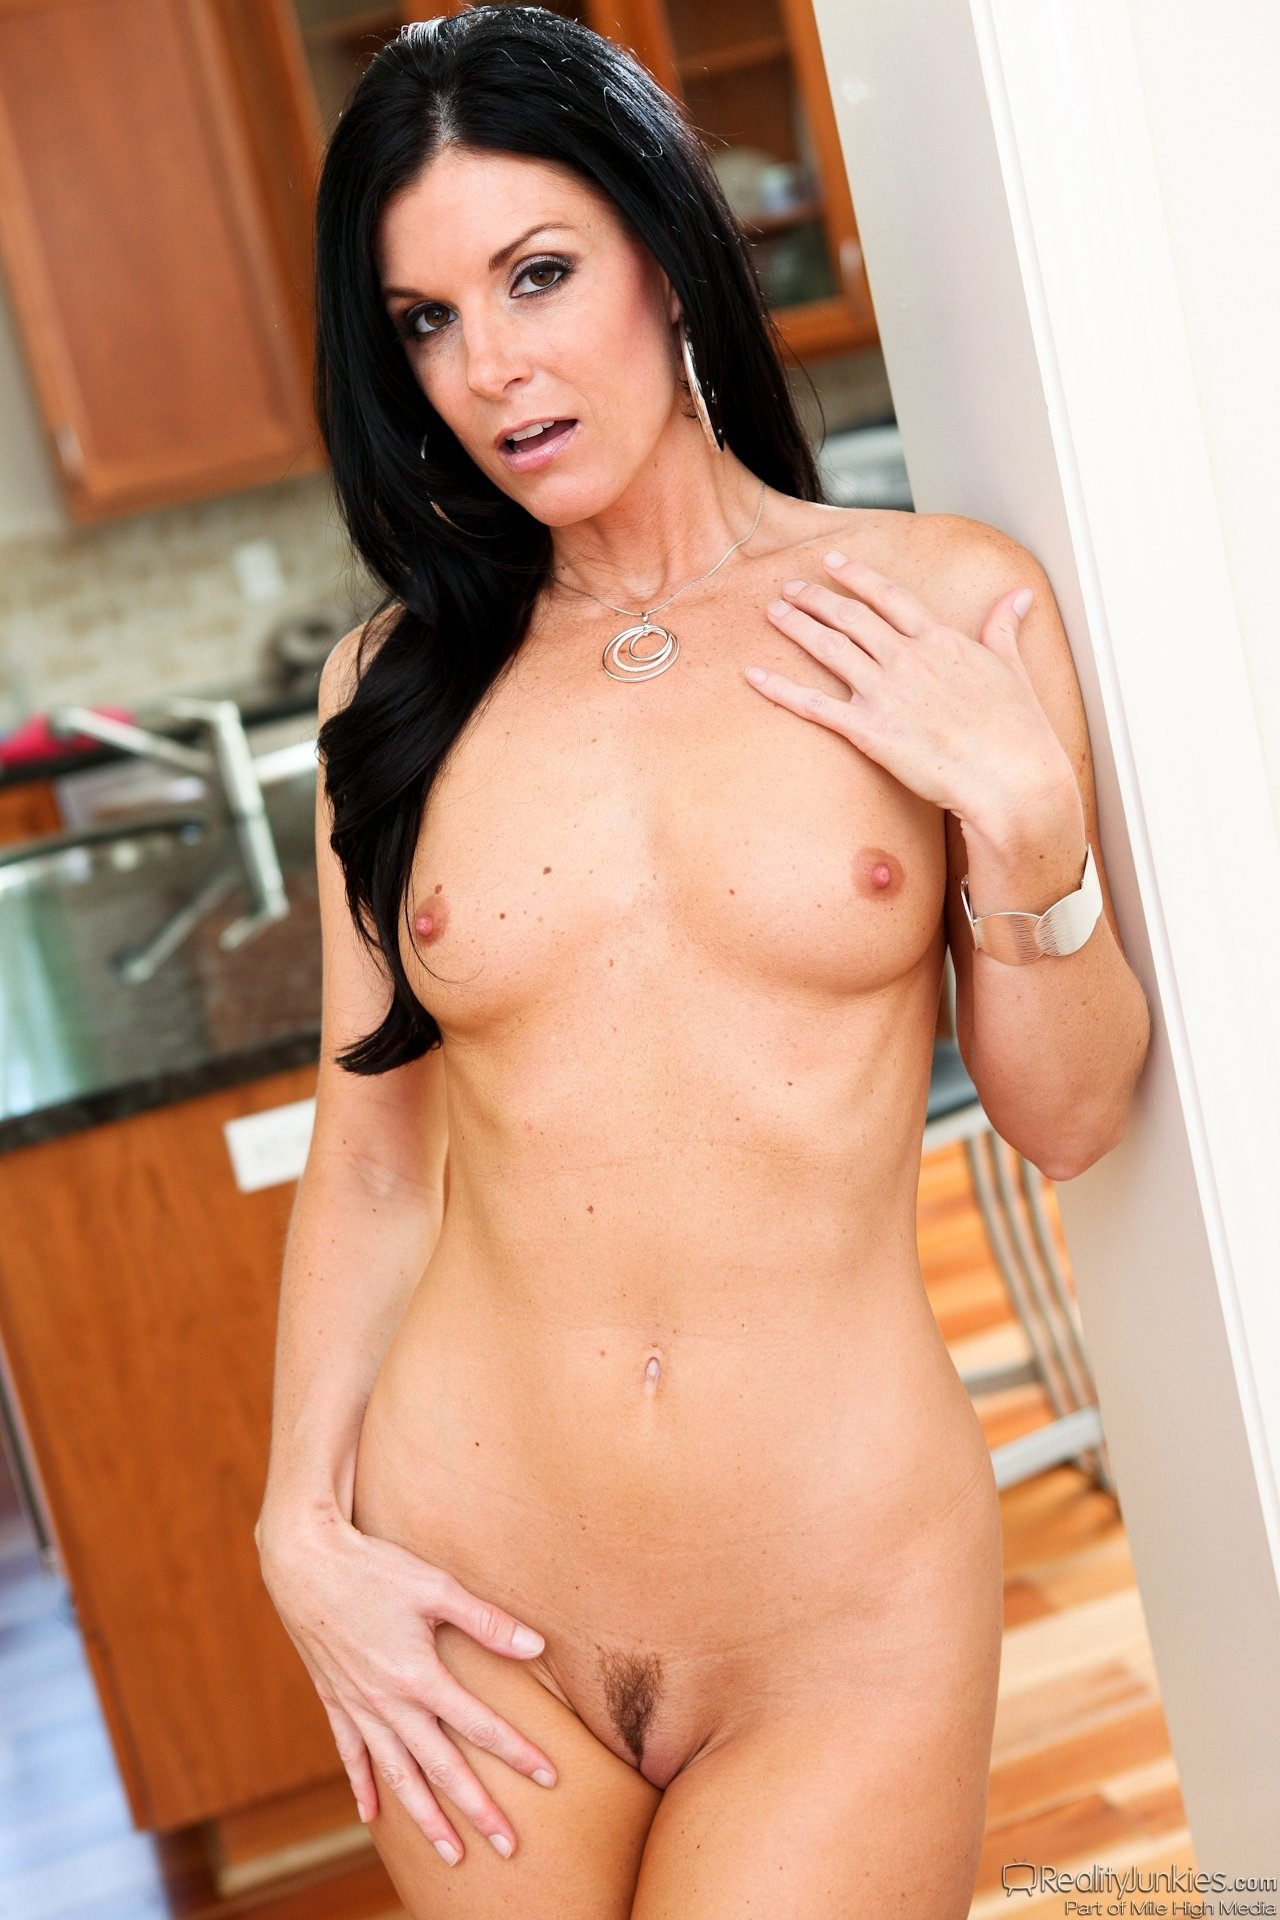 Free porn pics of india summer, shaved legs guy